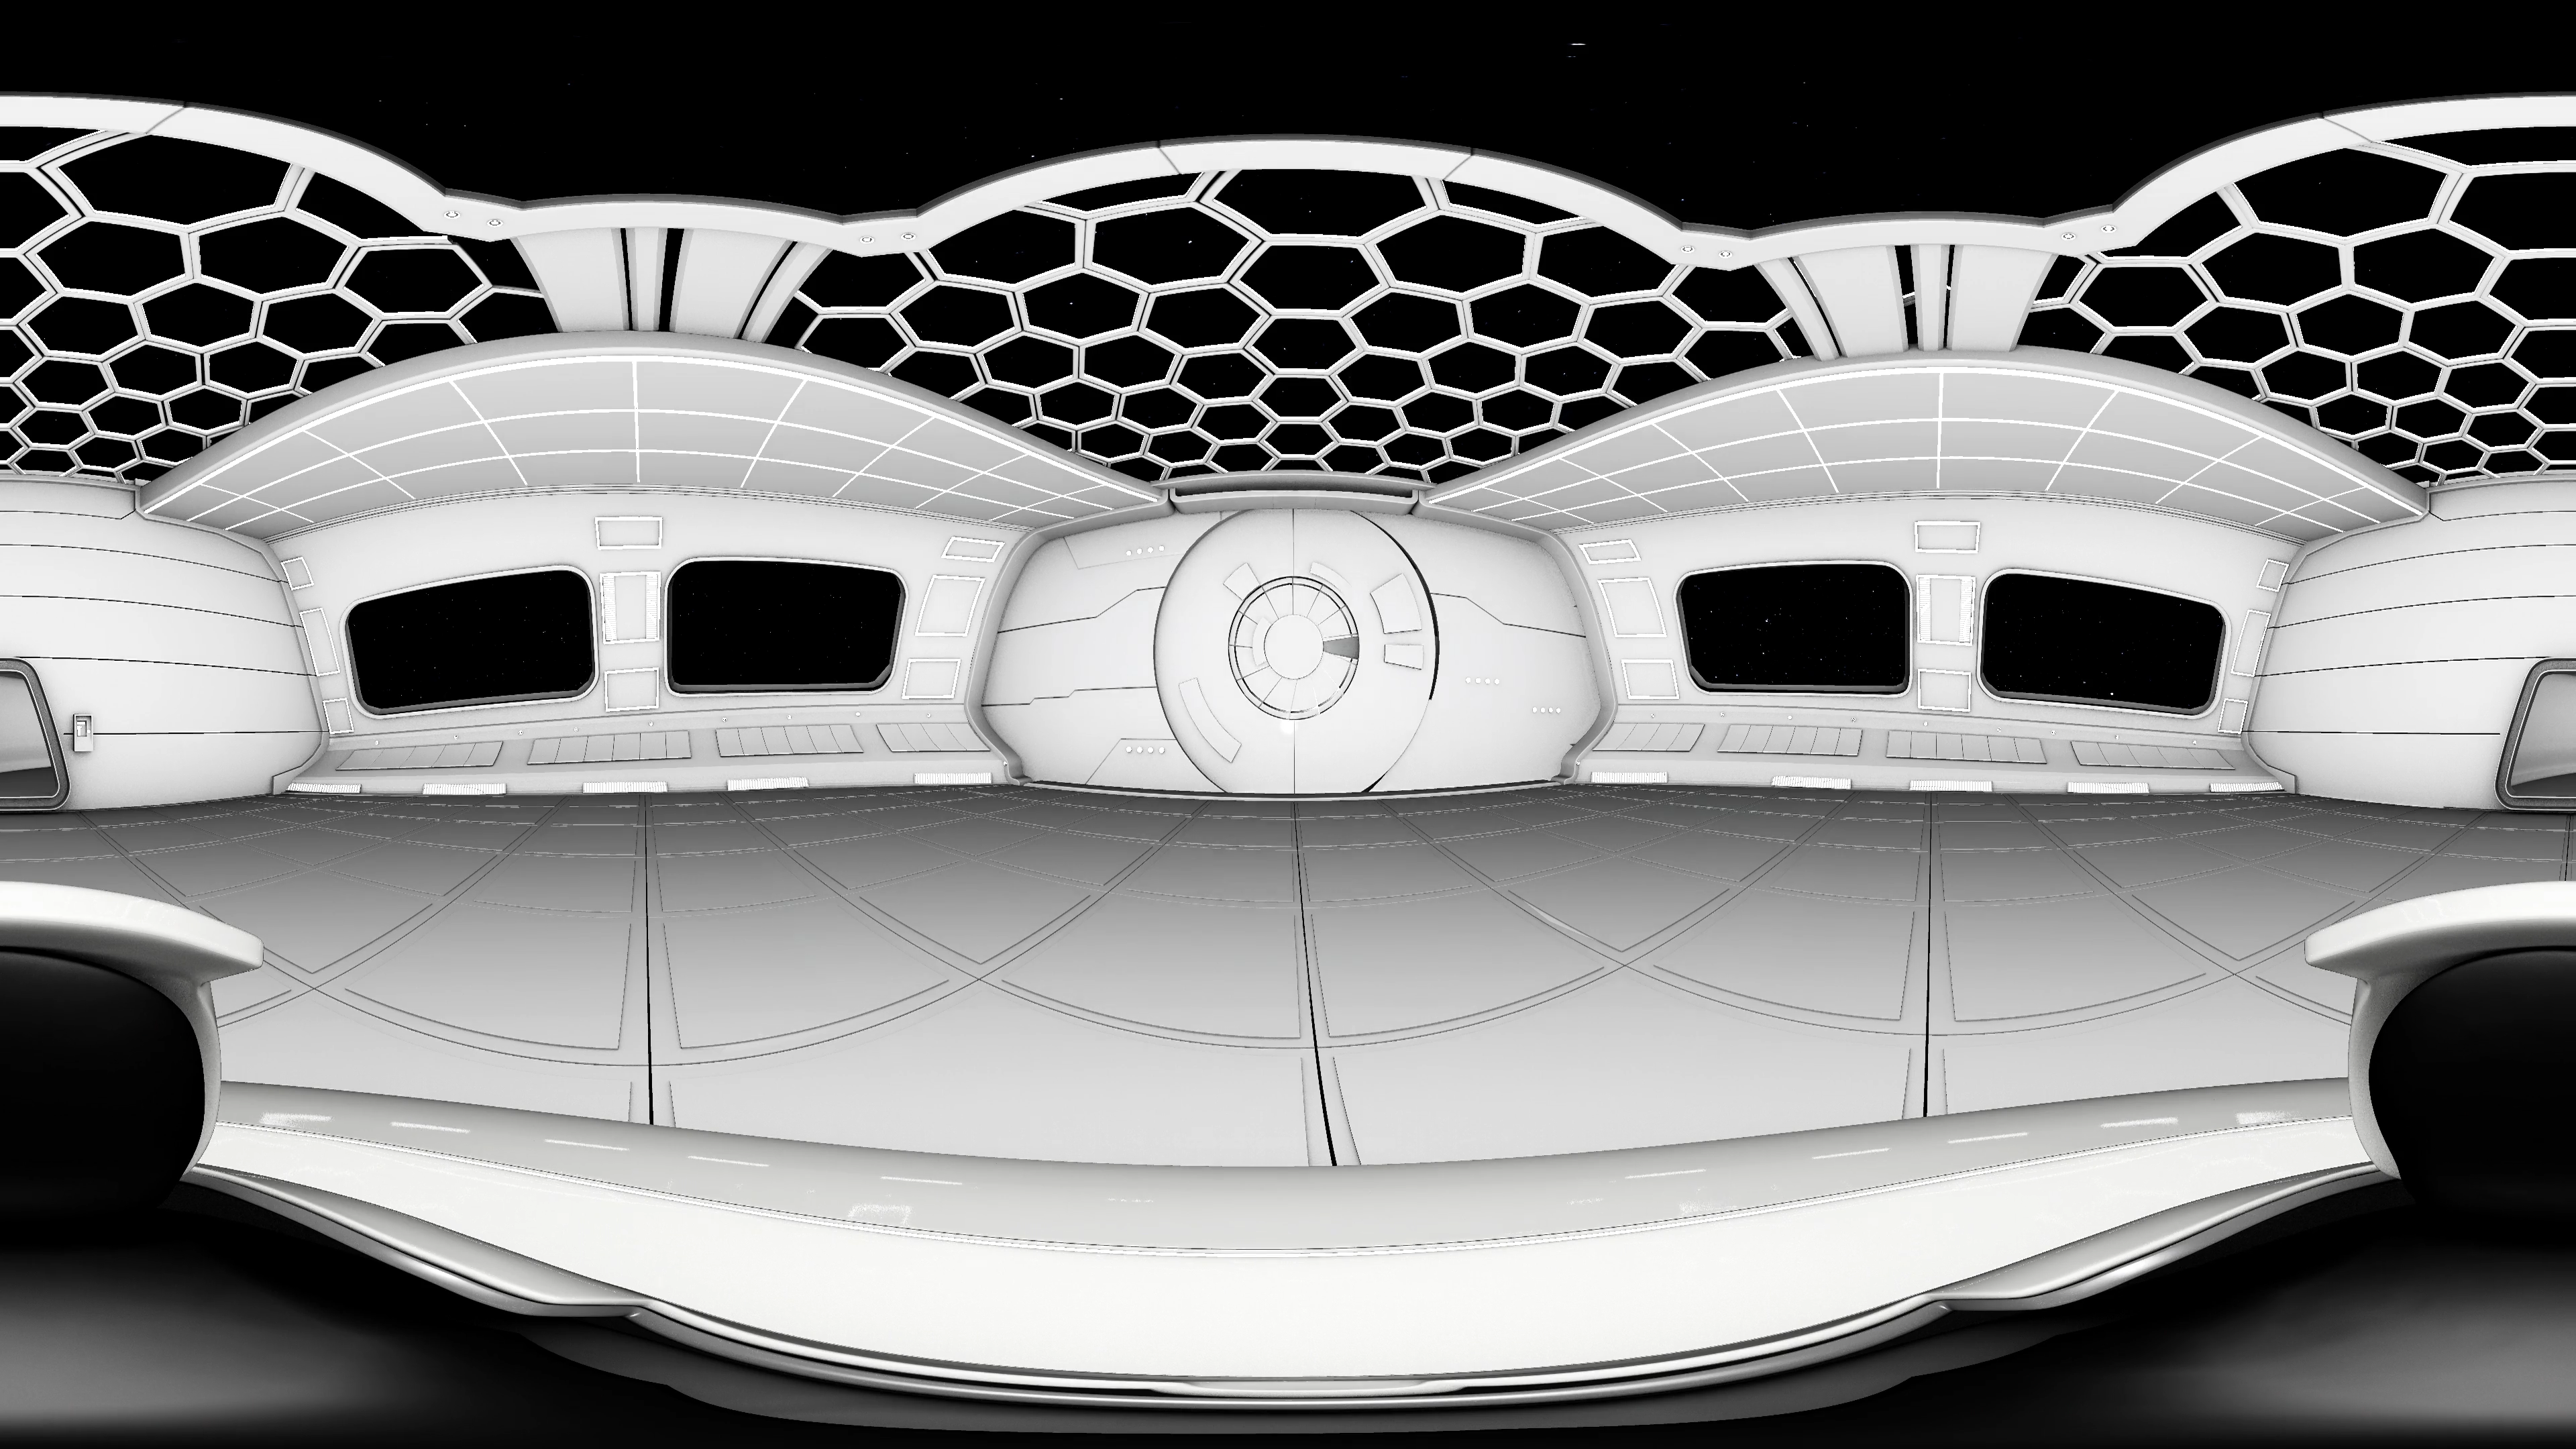 An equirectangular image of a virtual reality theater in space.